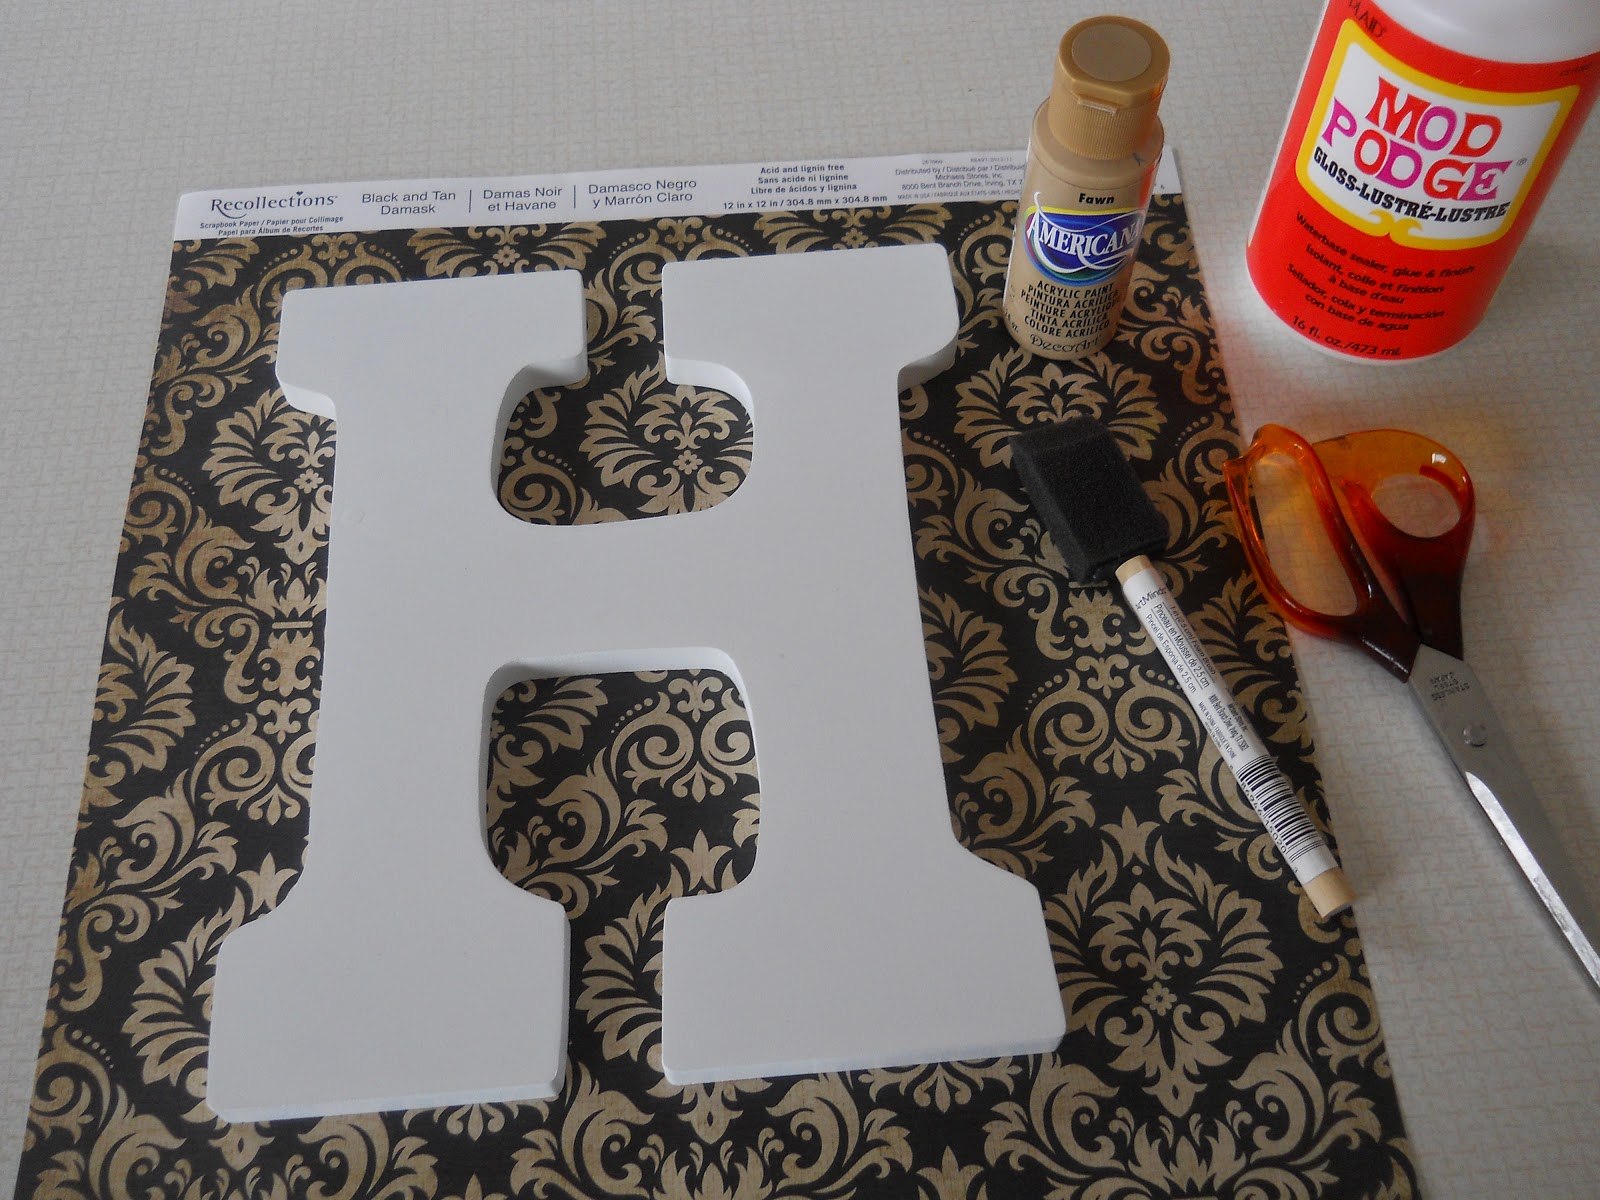 How to put scrapbook paper on wood - Here S A Fun Little Project I Put Together Over The Weekend I Started Off With Some Scrapbook Paper 9 White Wood Letter From Michael S Paint And Mod